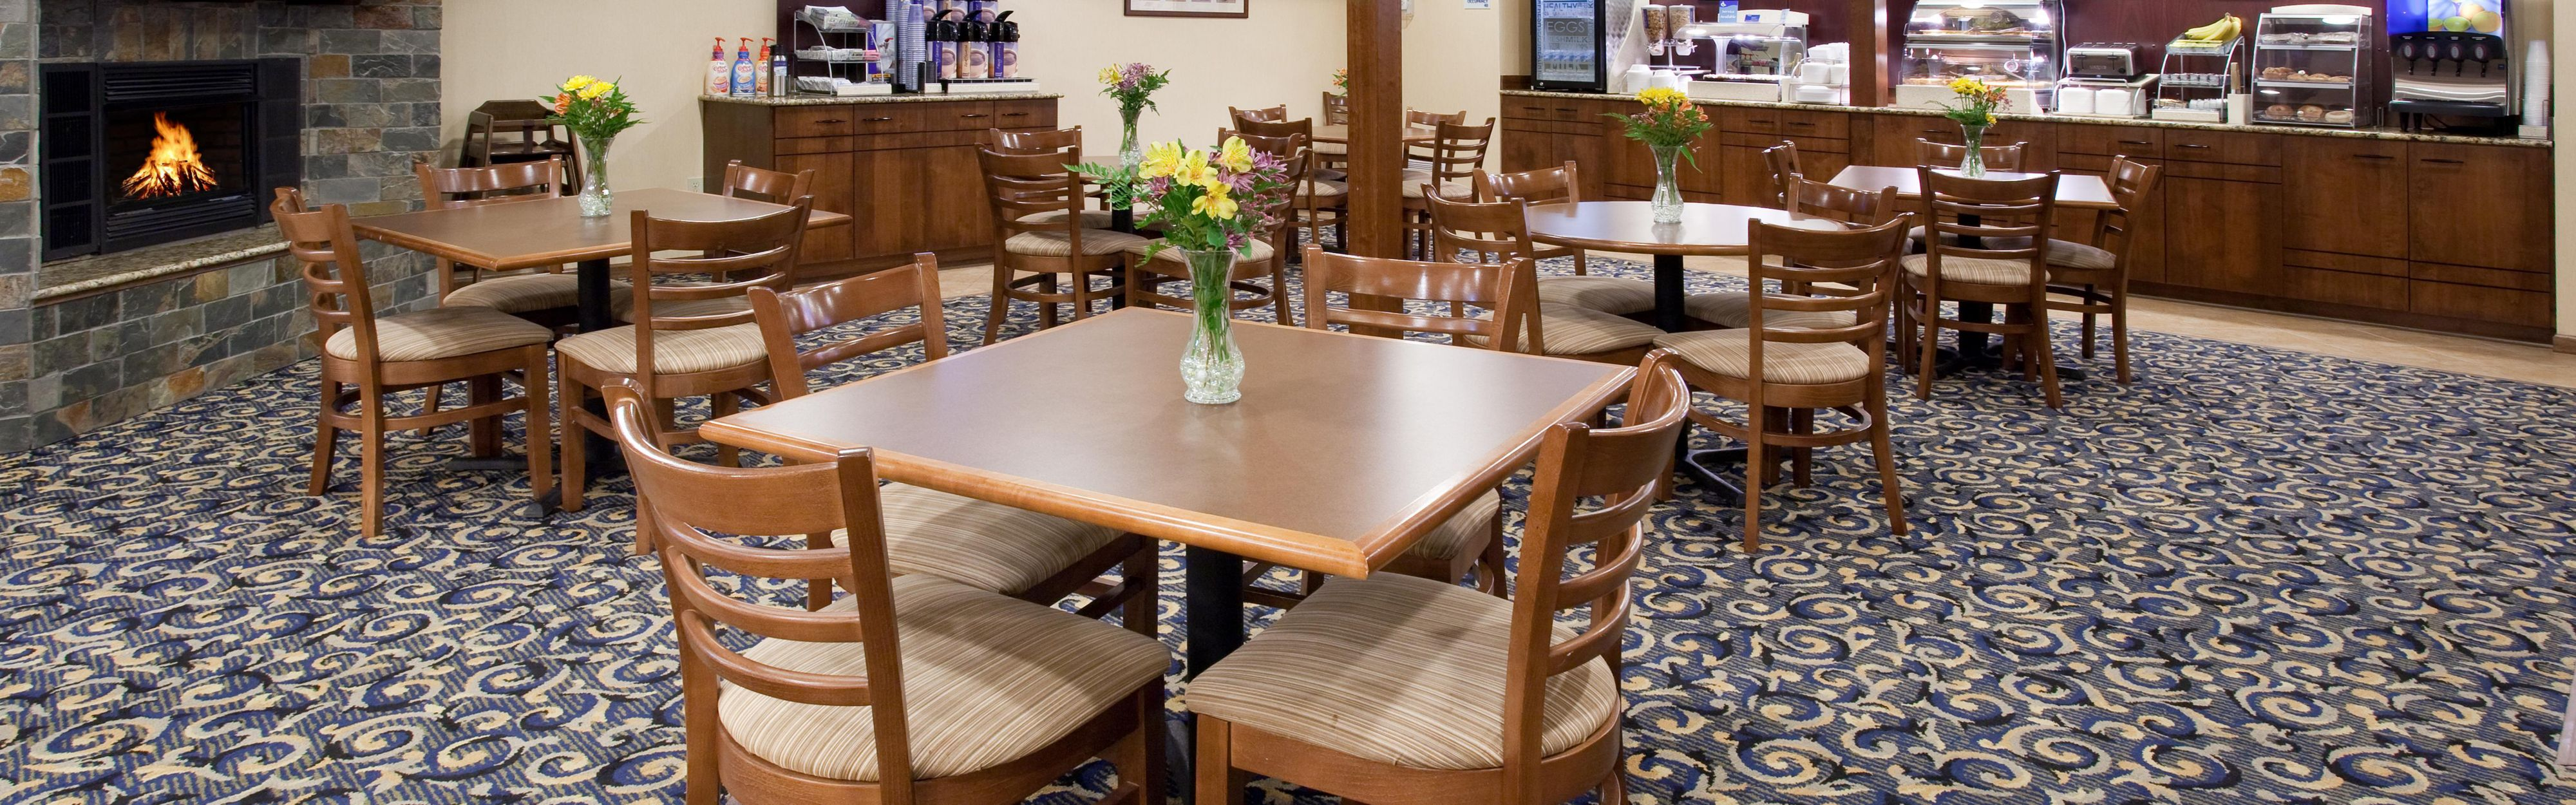 Holiday Inn Express & Suites Scottsbluff-Gering image 3